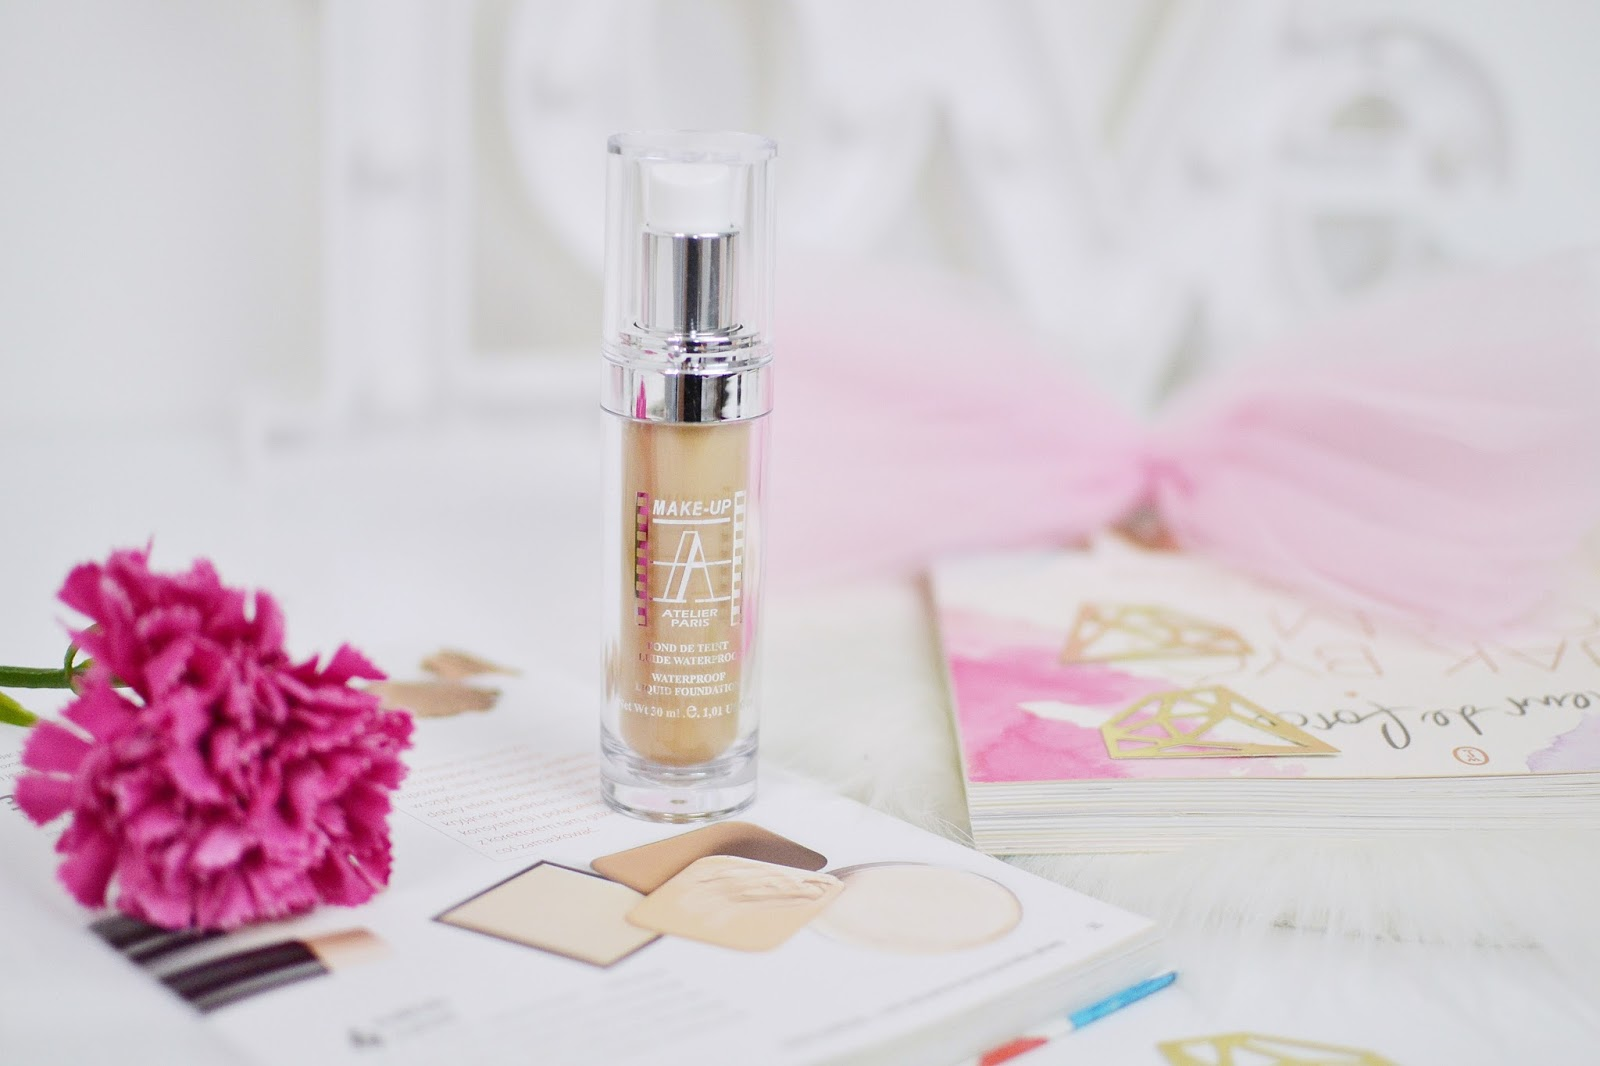 MAKEUP ATELIER PARIS WATERPROOF FOUNDATION